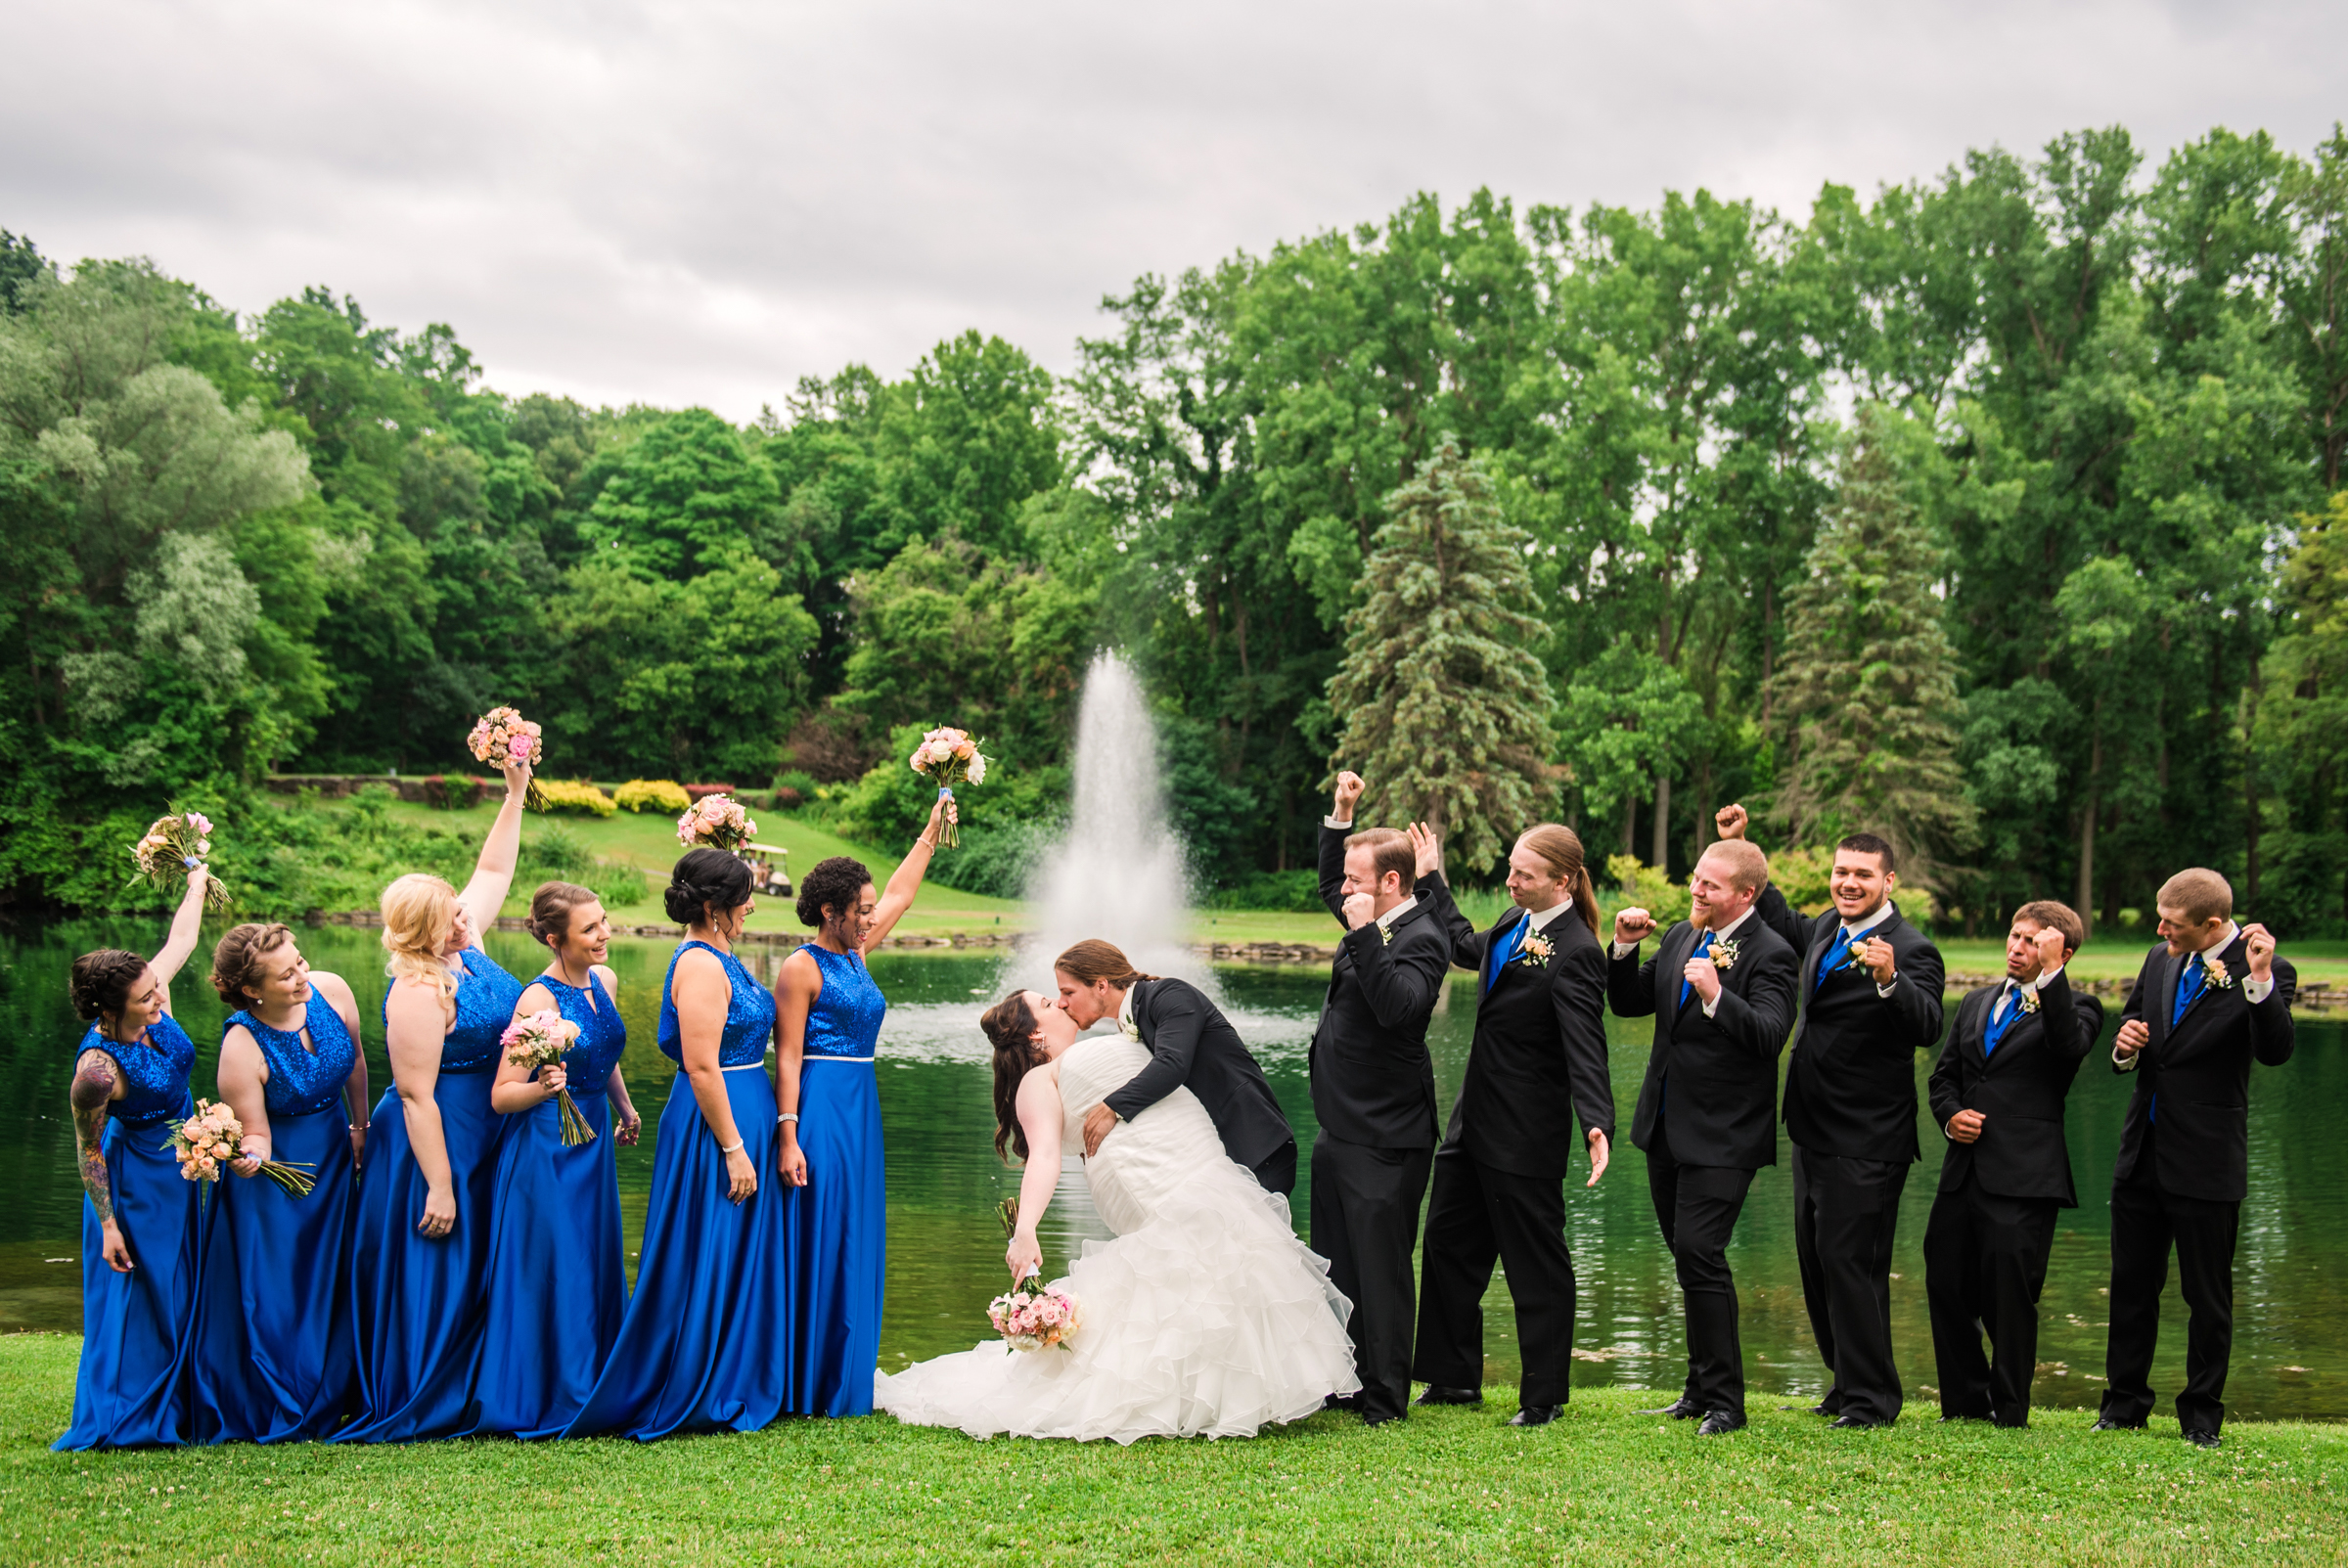 JILL_STUDIO_Wedding_JILL_STUDIO_Rochester_NY_Photographer_7-DSC_3874.jpg